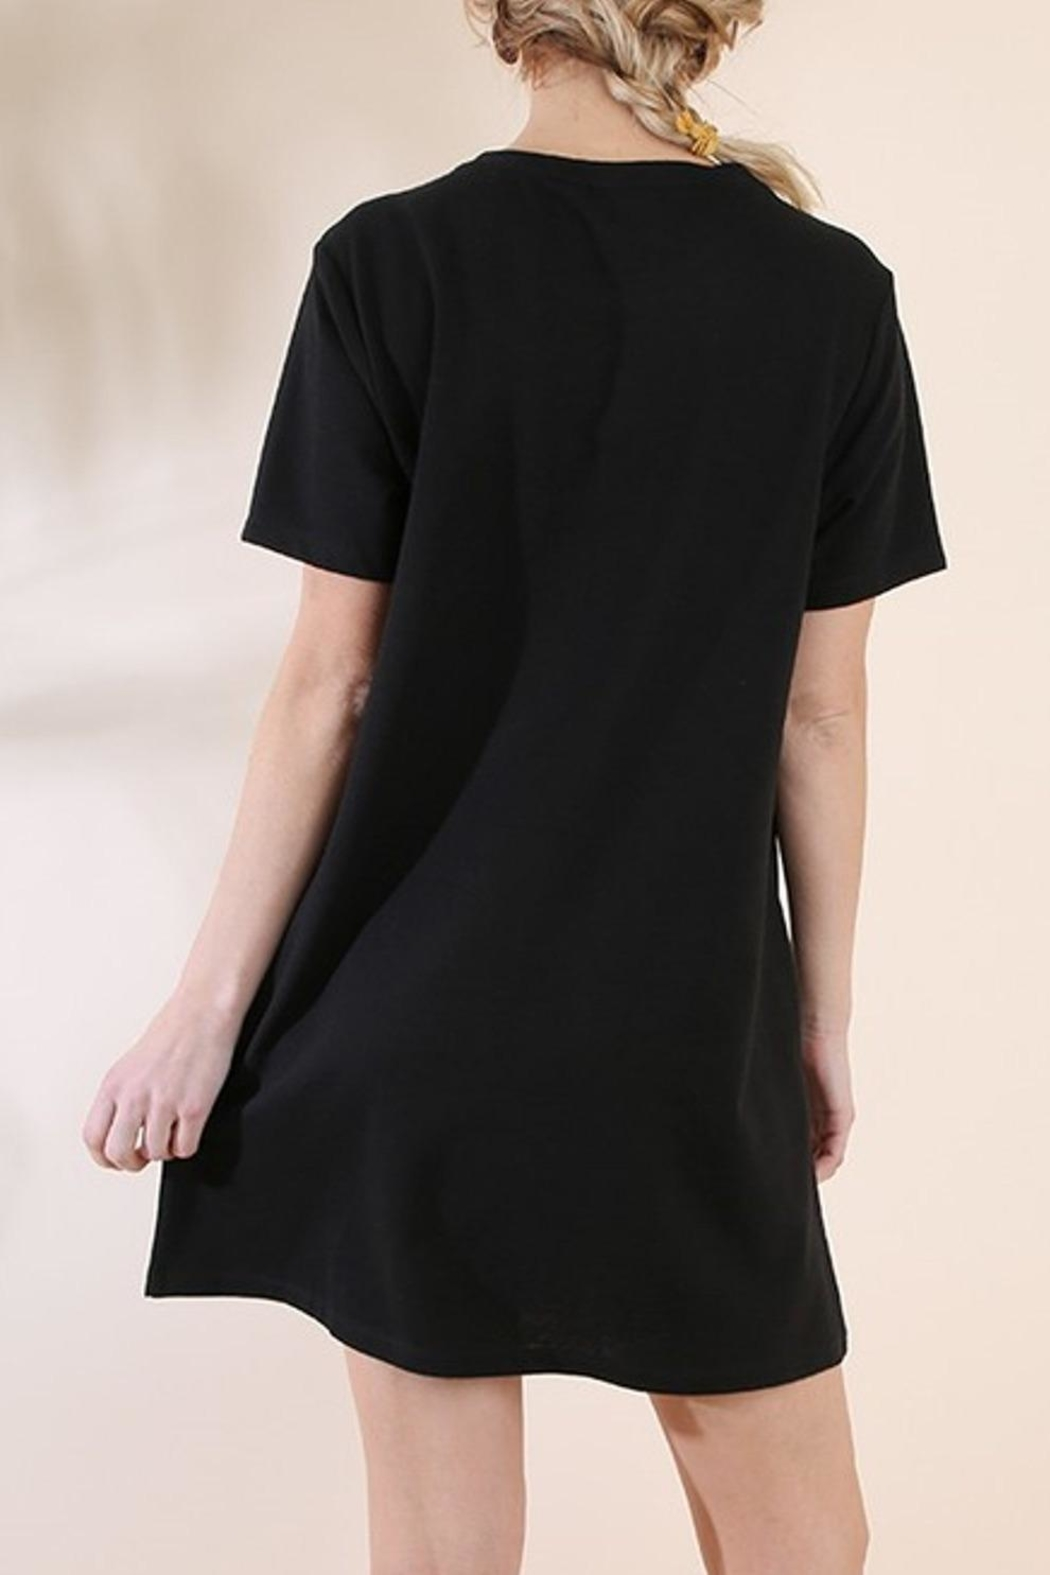 Umgee USA Black Embroidered Dress - Front Full Image